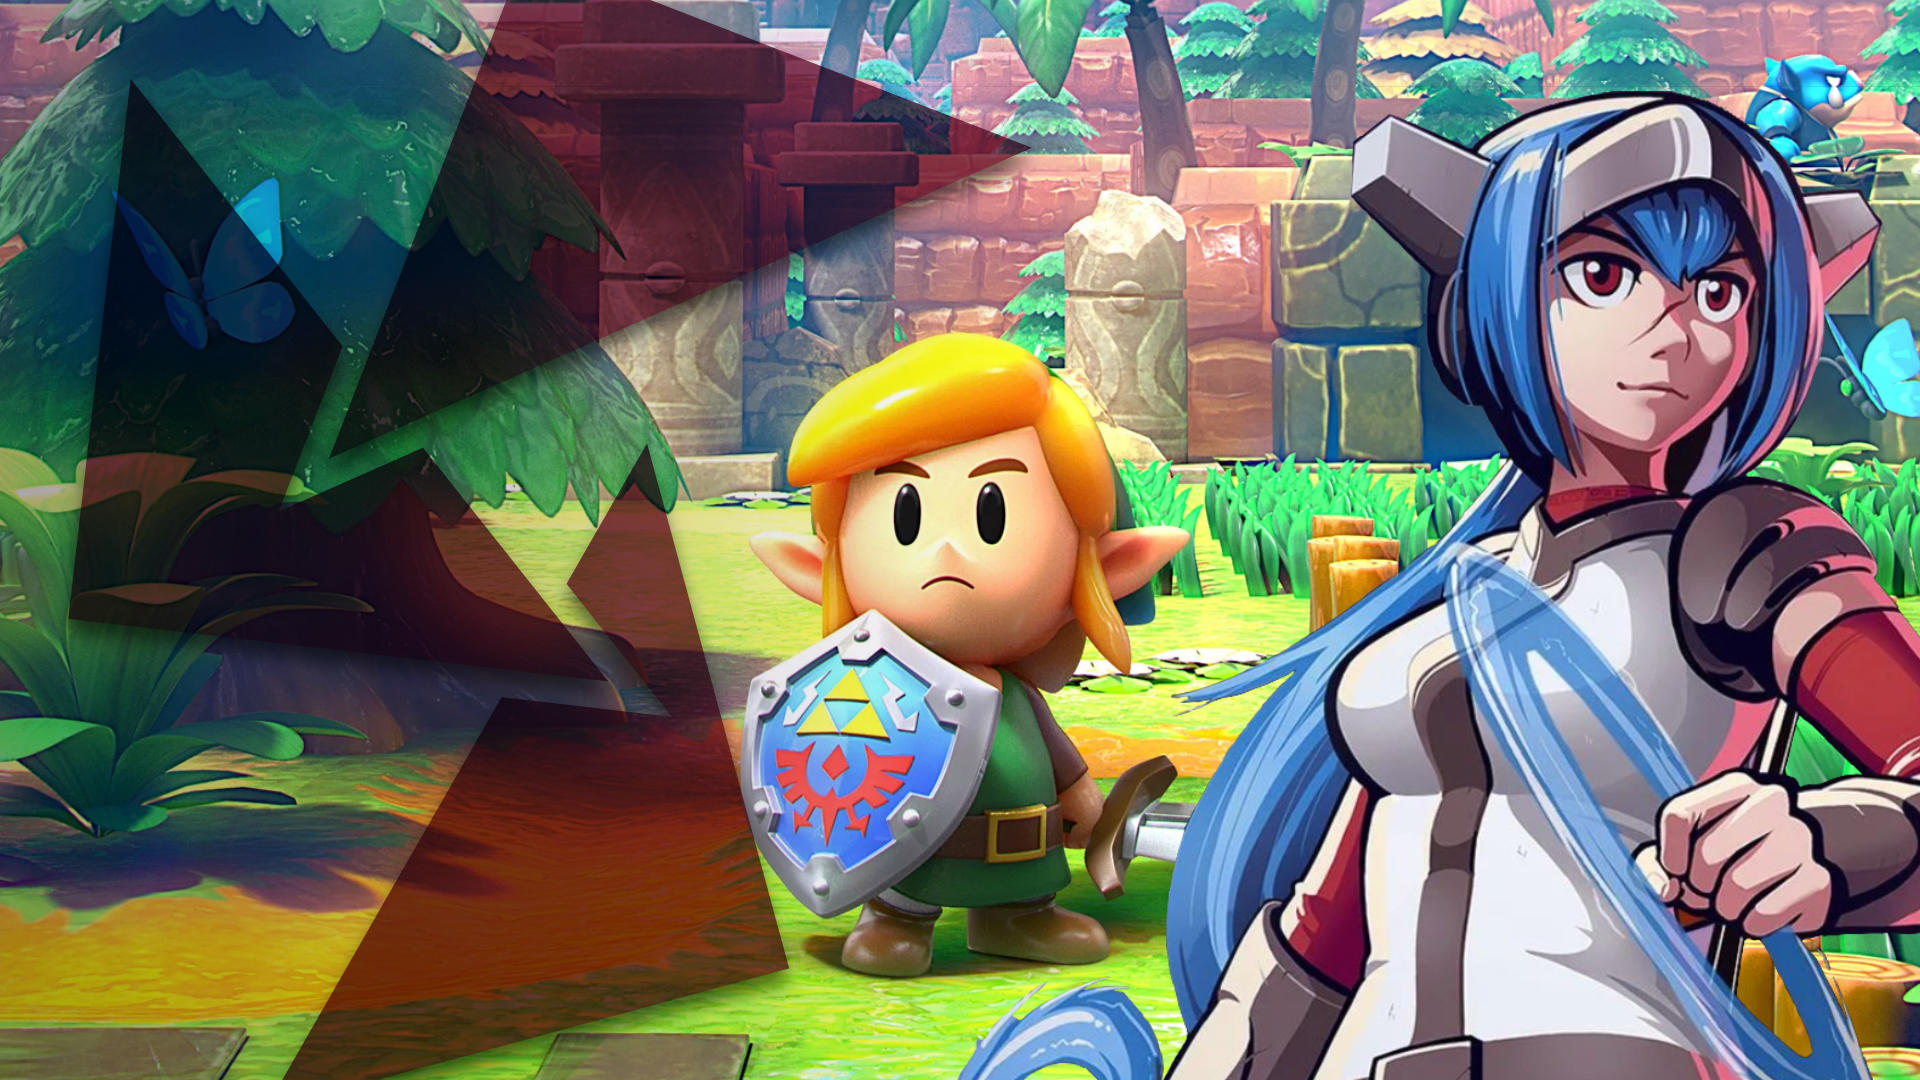 A young adventurer with a shield and lovely blond locks stands amidst ruins and beside him is a blue-haired warrior woman from the future in a white jerkin.